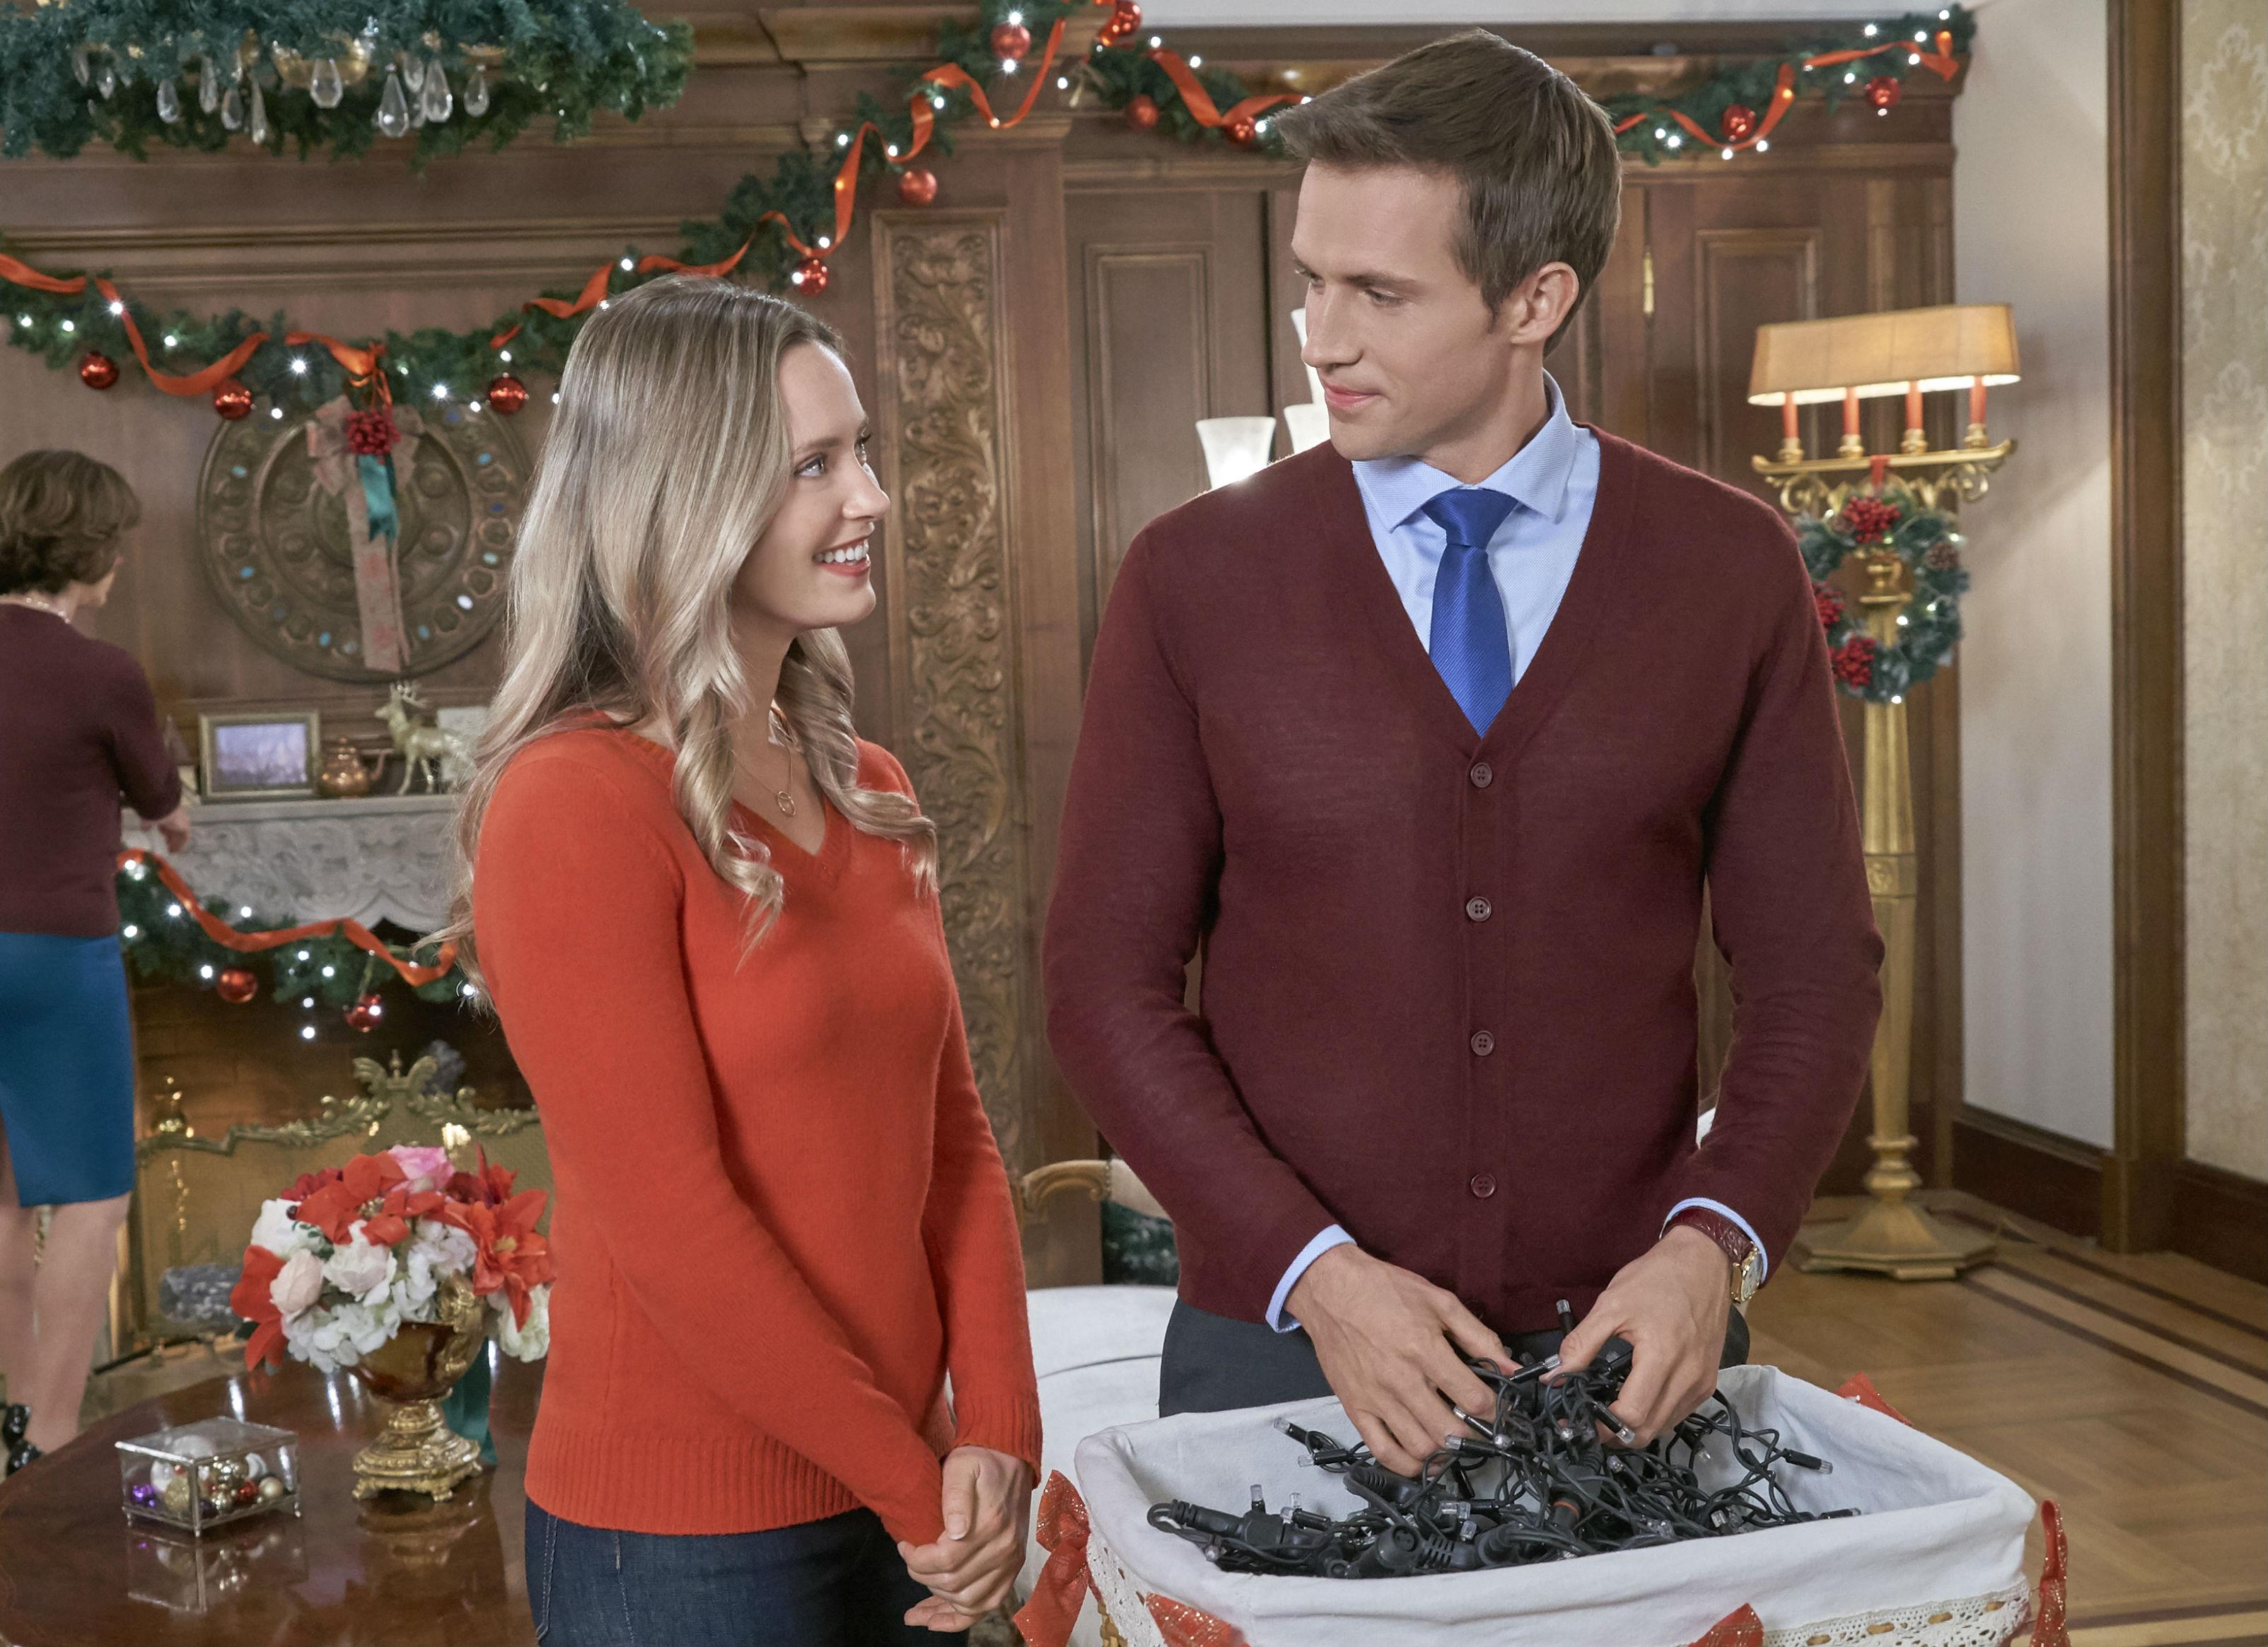 Christmas At The Palace.Christmas At The Palace Hallmark Channel Premiere See Cast